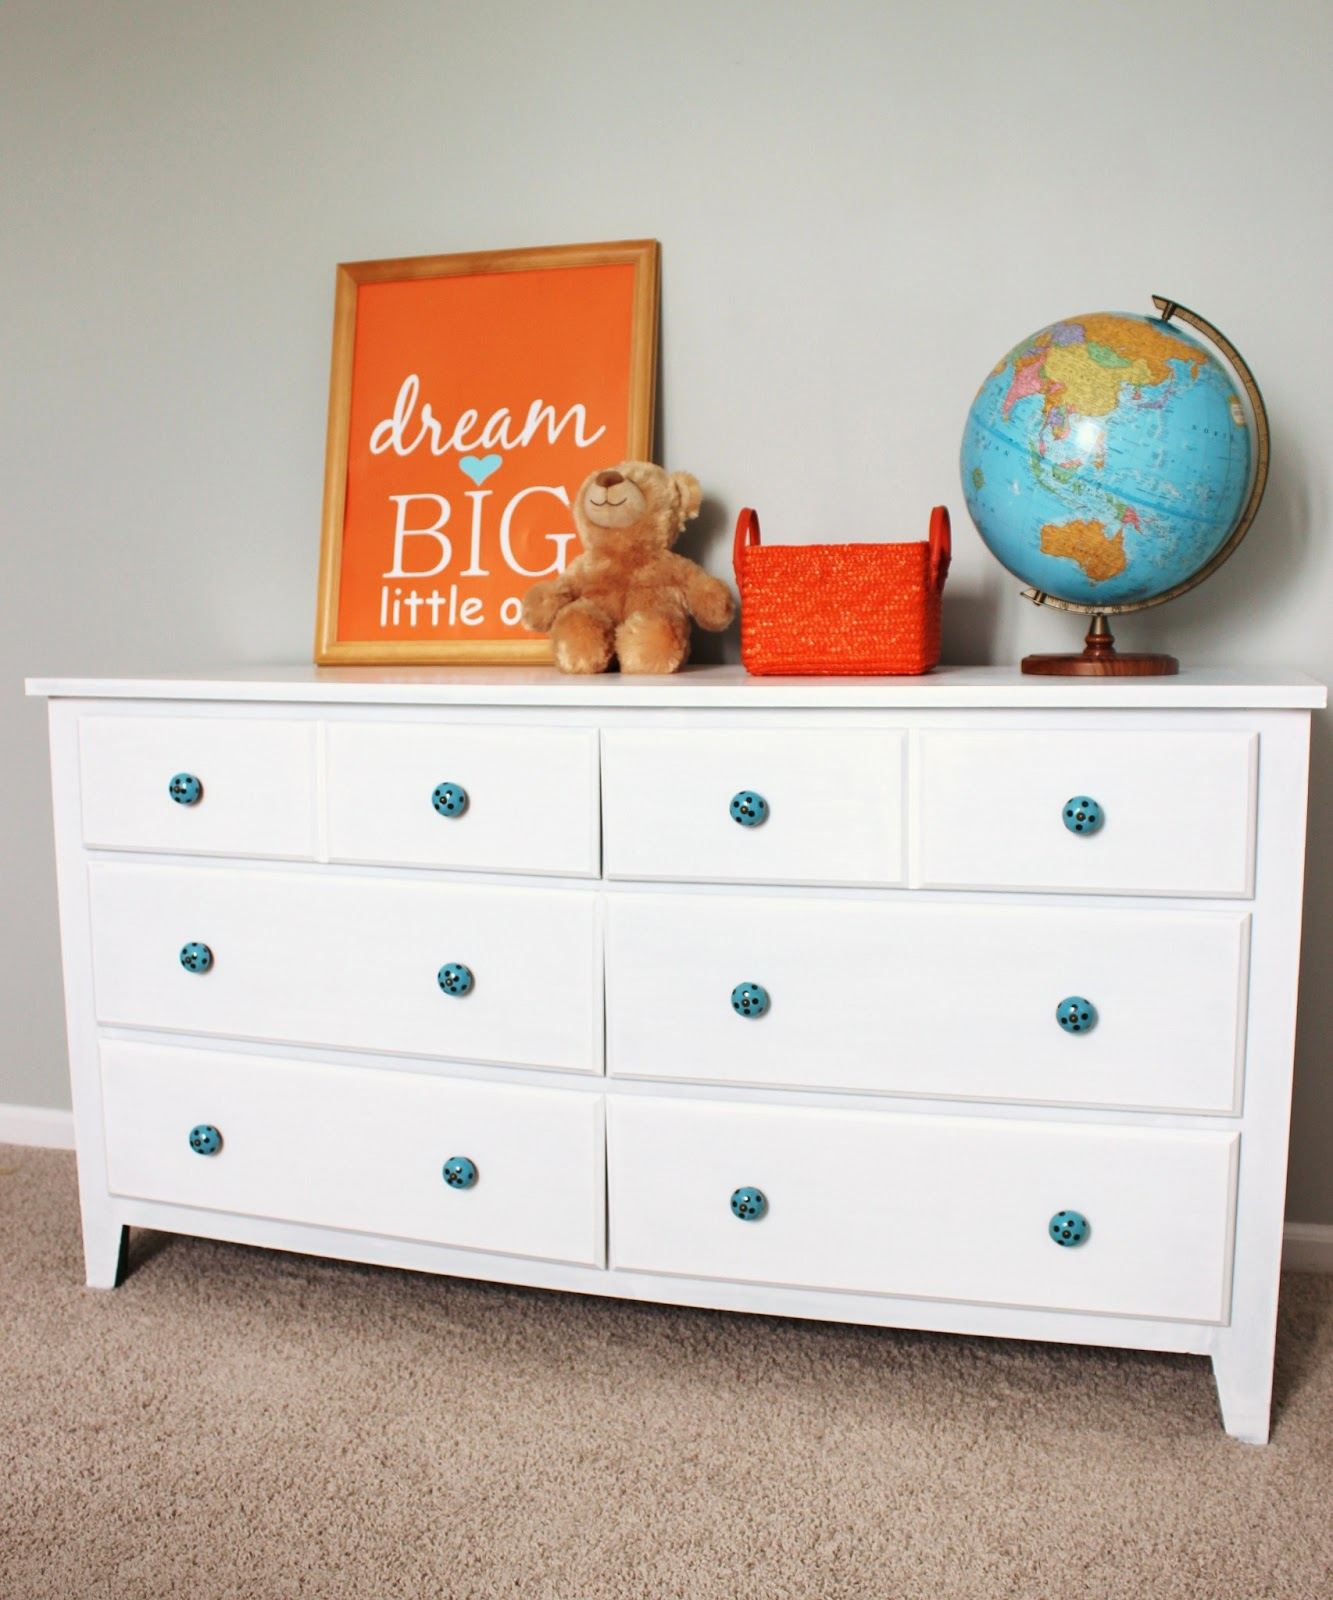 Can You Paint Laminate Furniture #30: Old Dresser Makeover: How To Paint Laminate Furniture